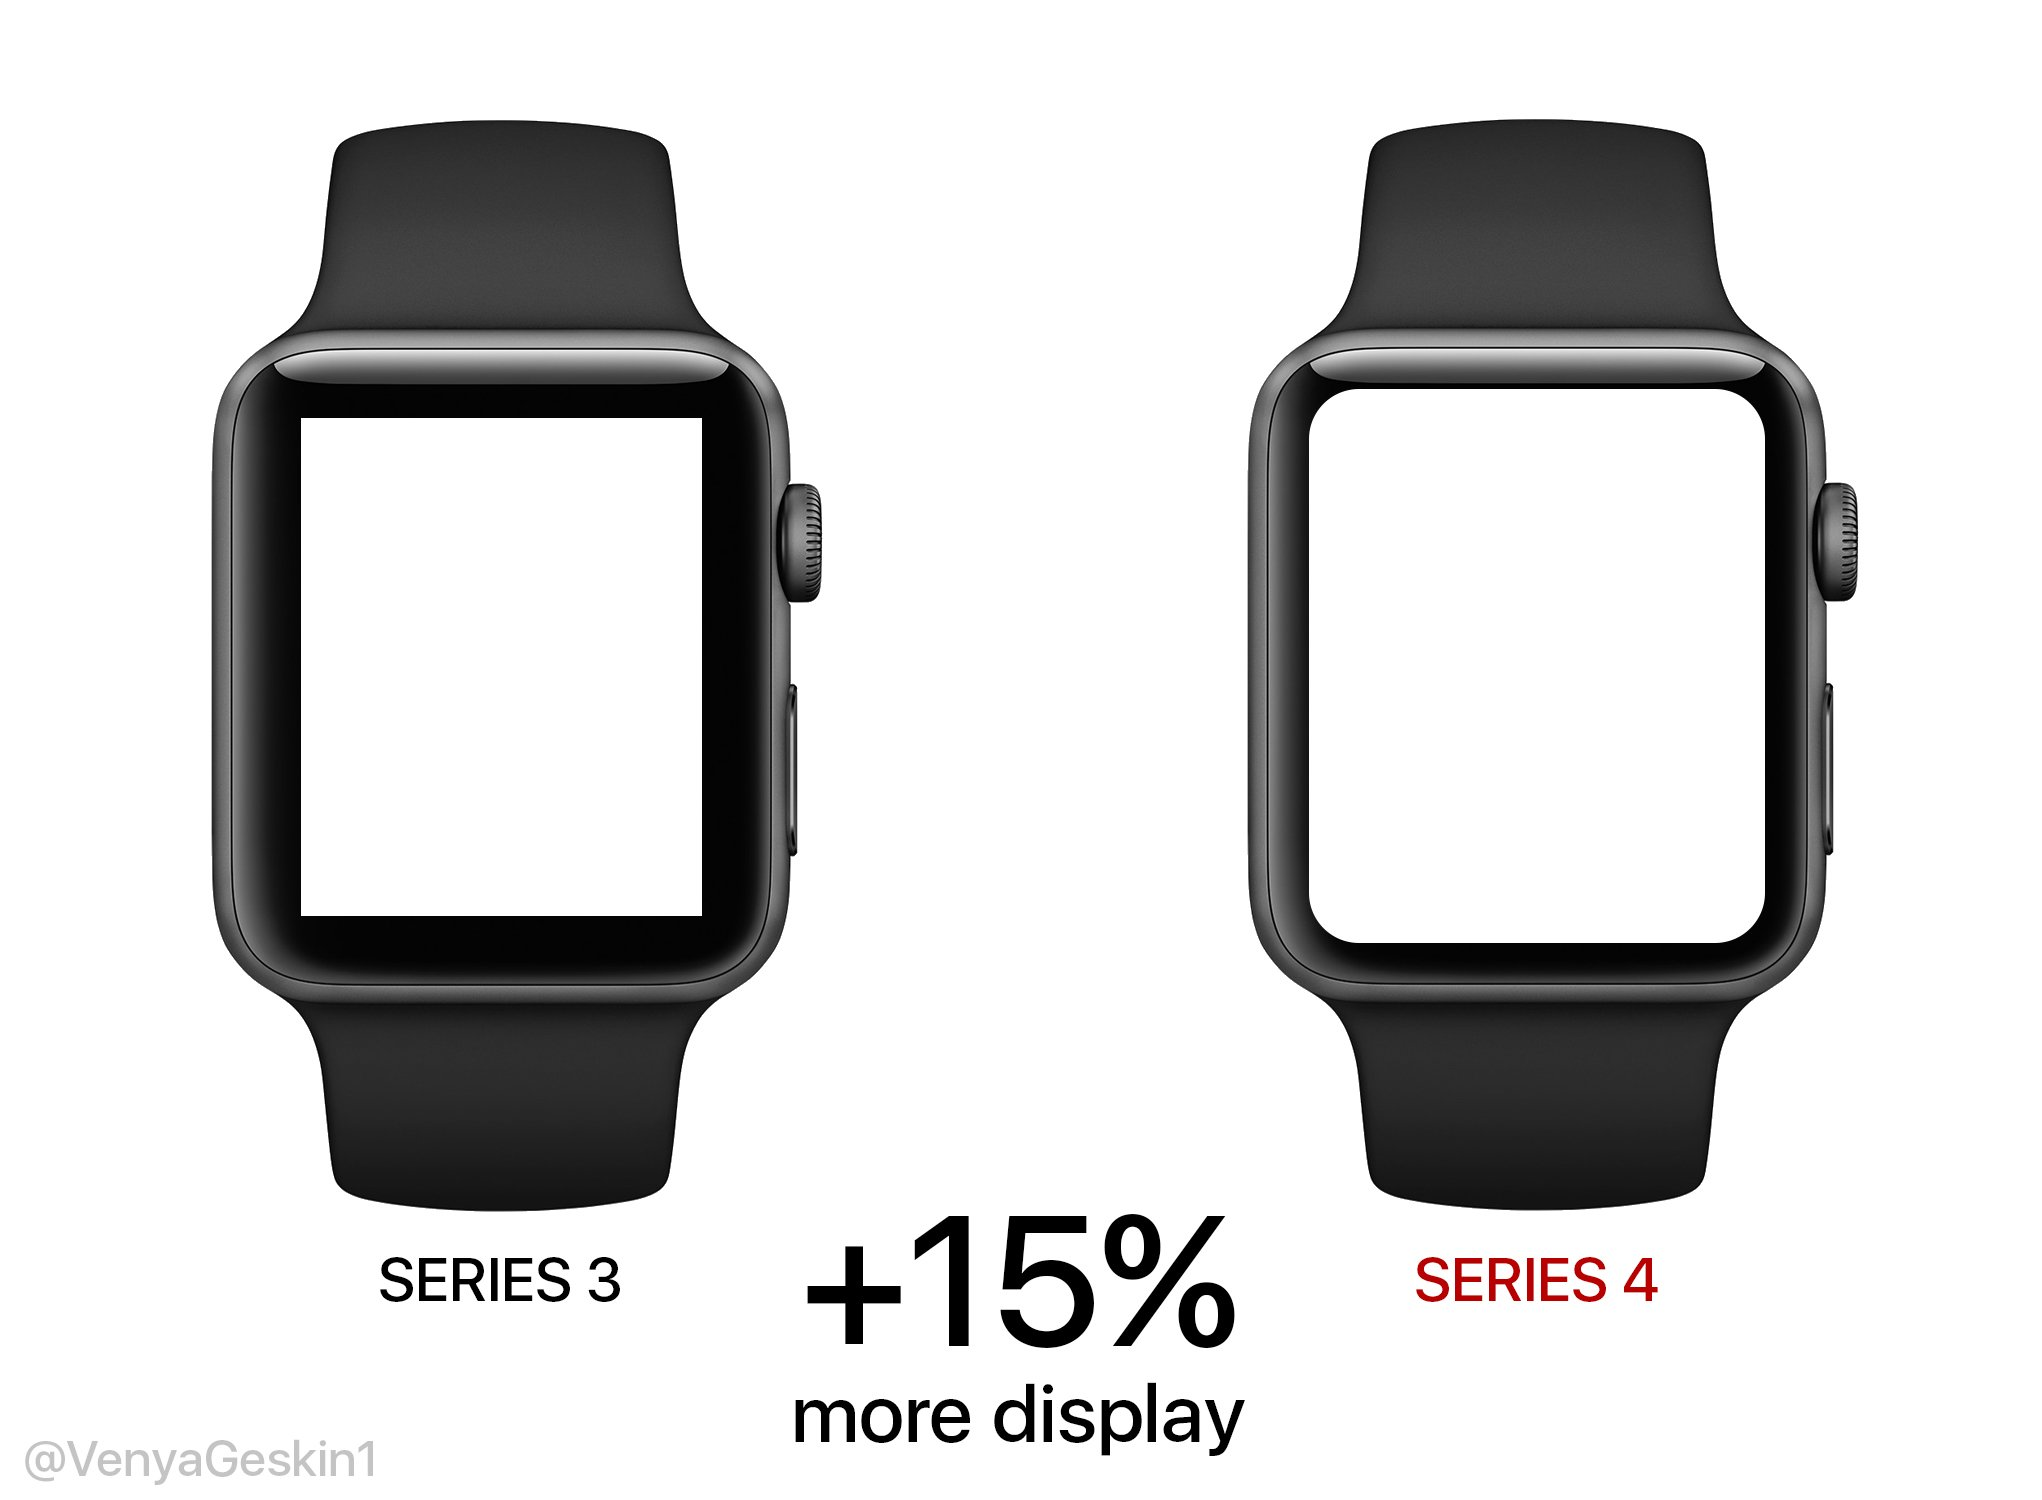 30237633eb 2018 Apple Watch Models to Have New Design with 15% Bigger Display ...